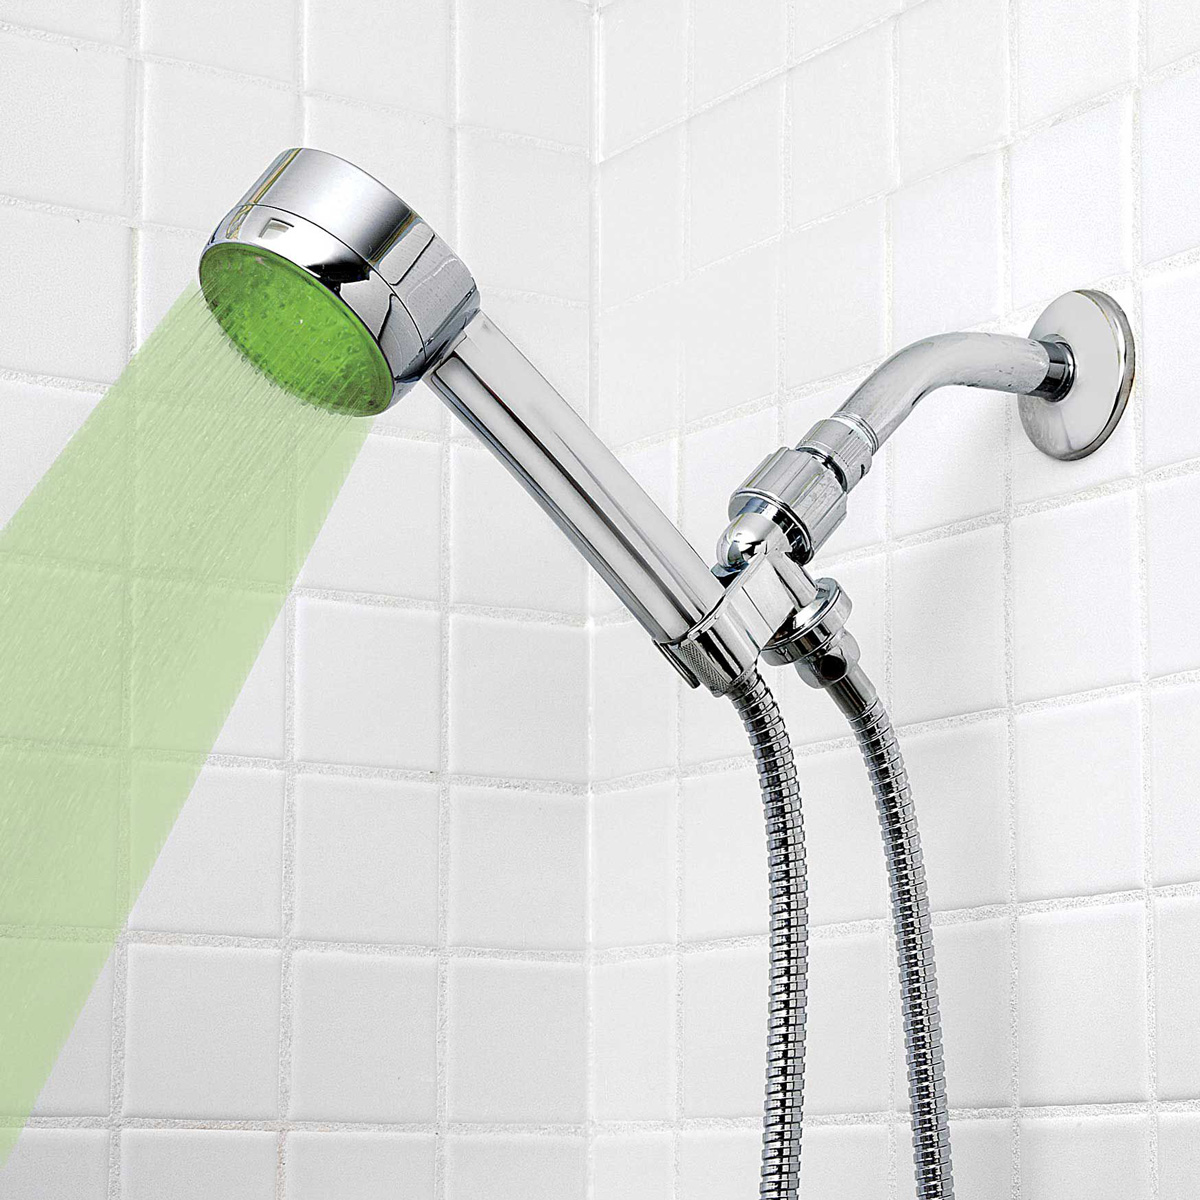 HealthSmart LumaTemp - LED Color Changing Shower Head - The Green Head